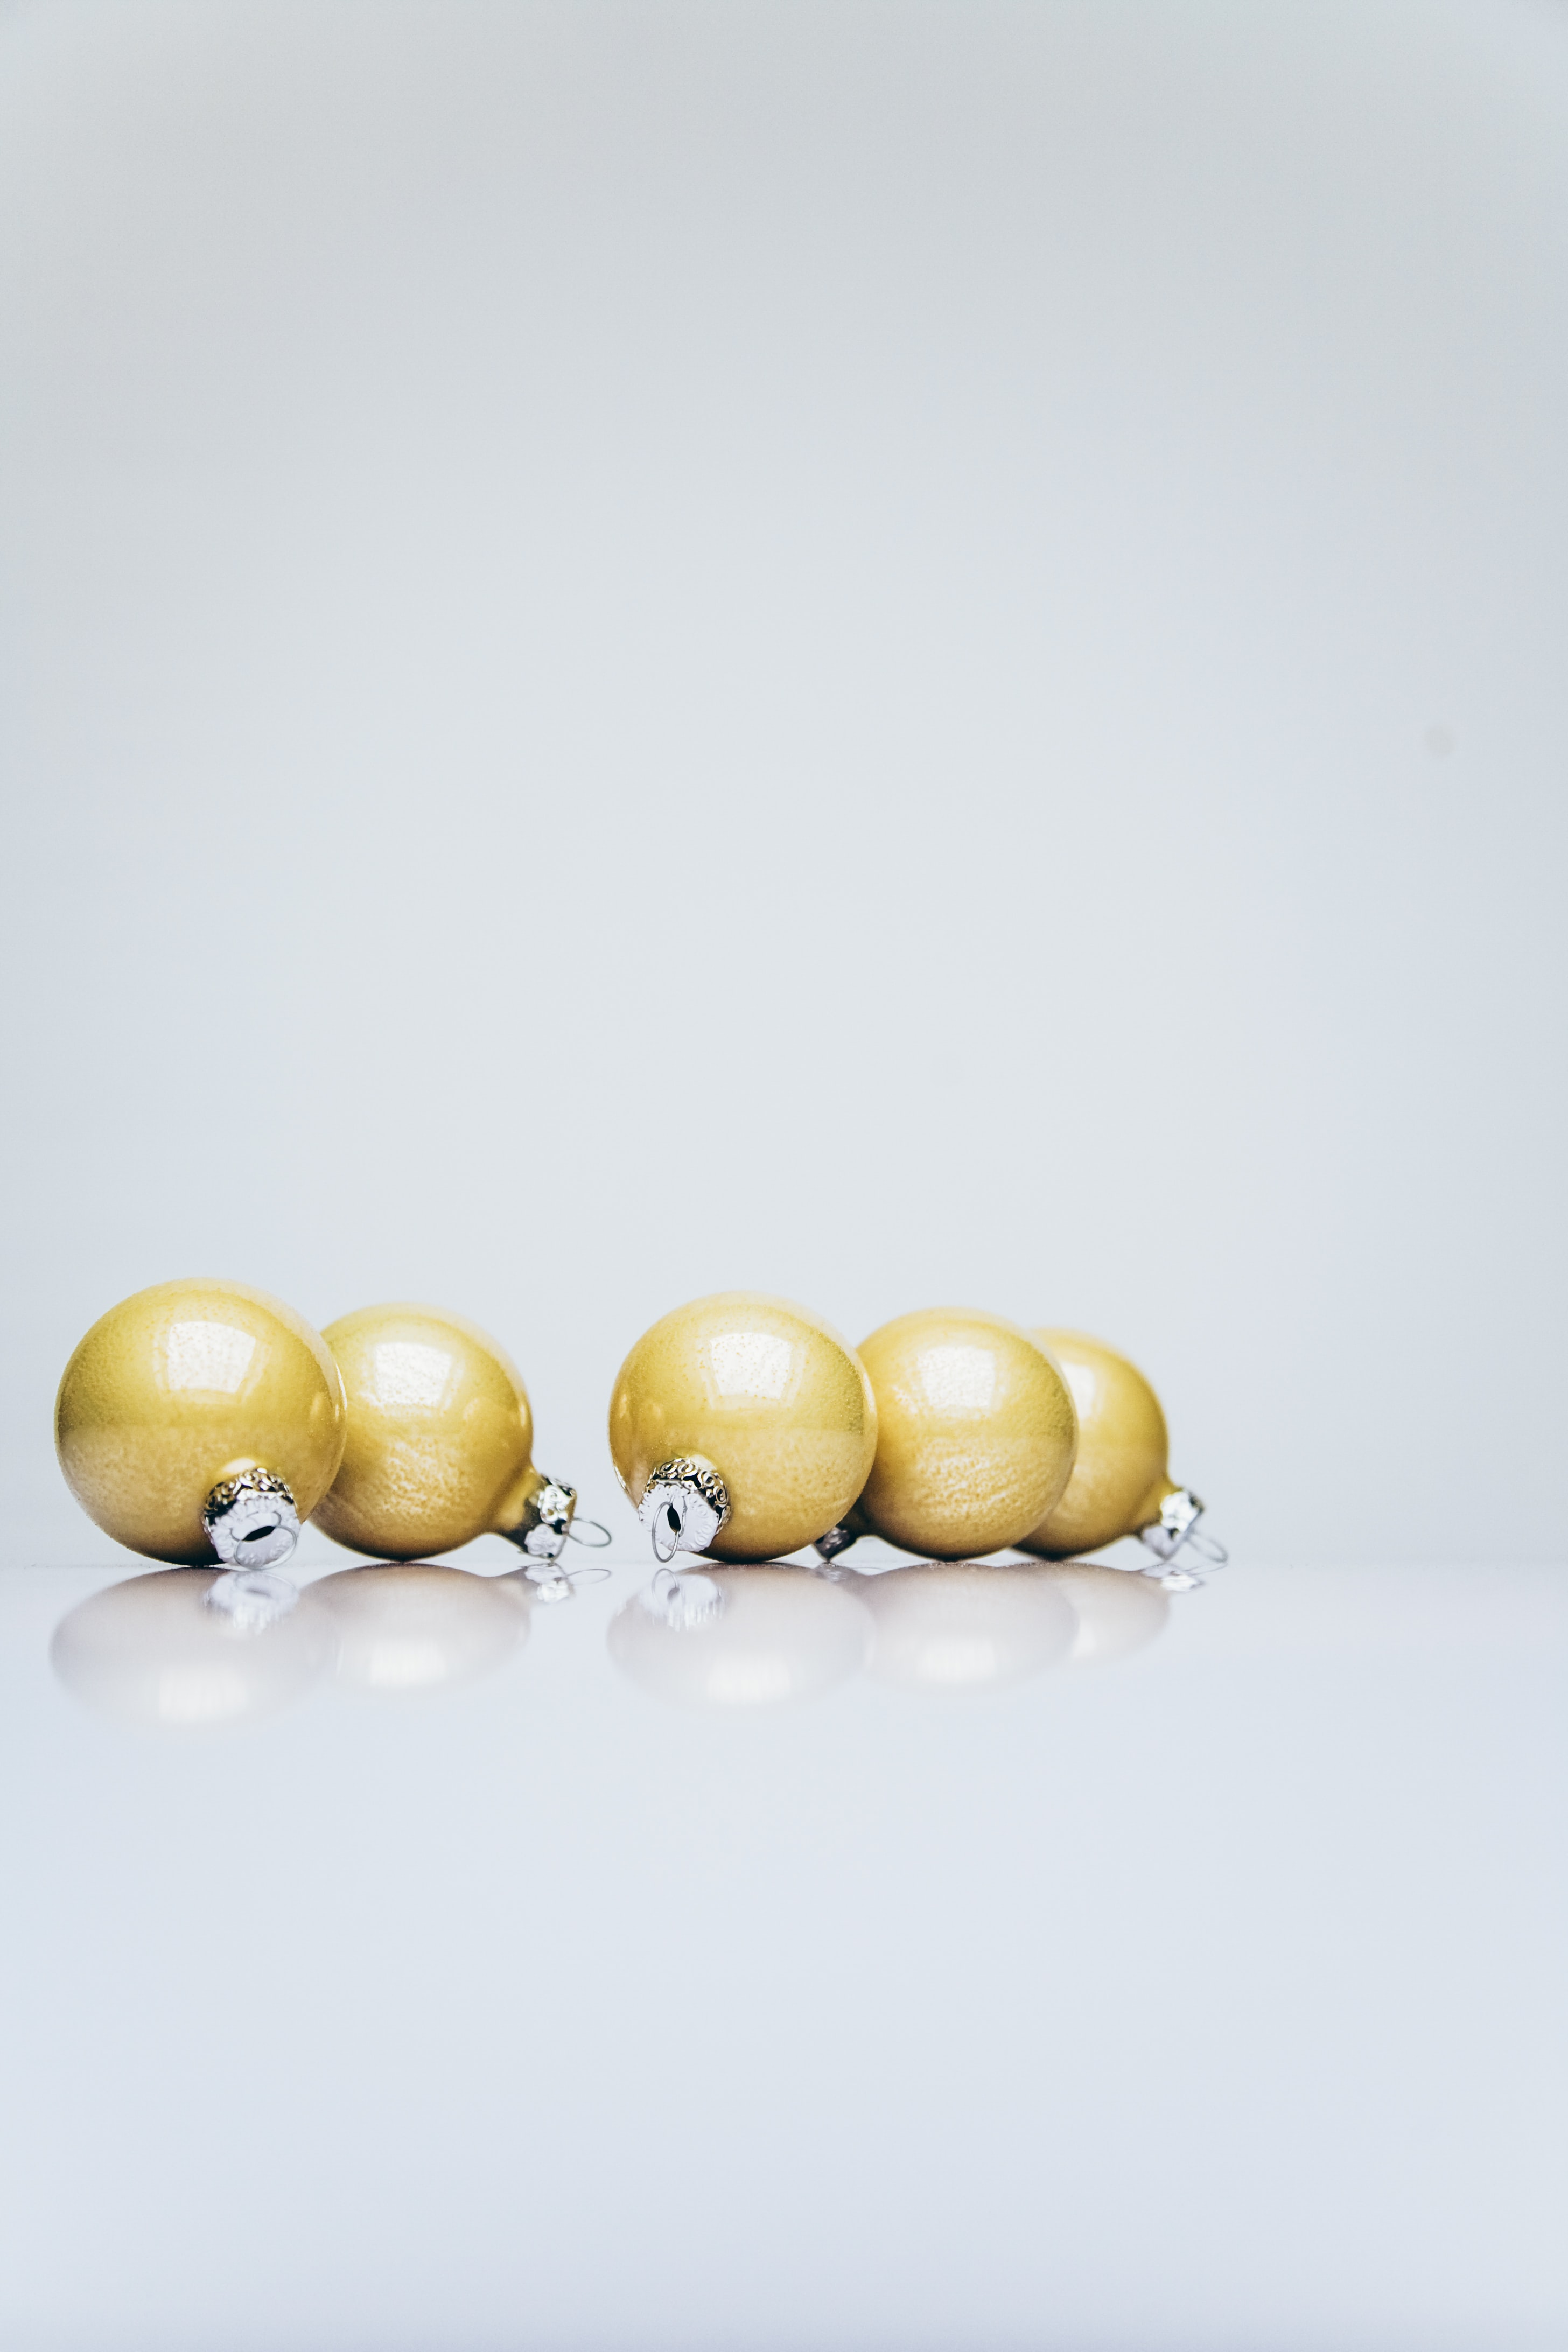 six gold Christmas baubles on white wooden surface